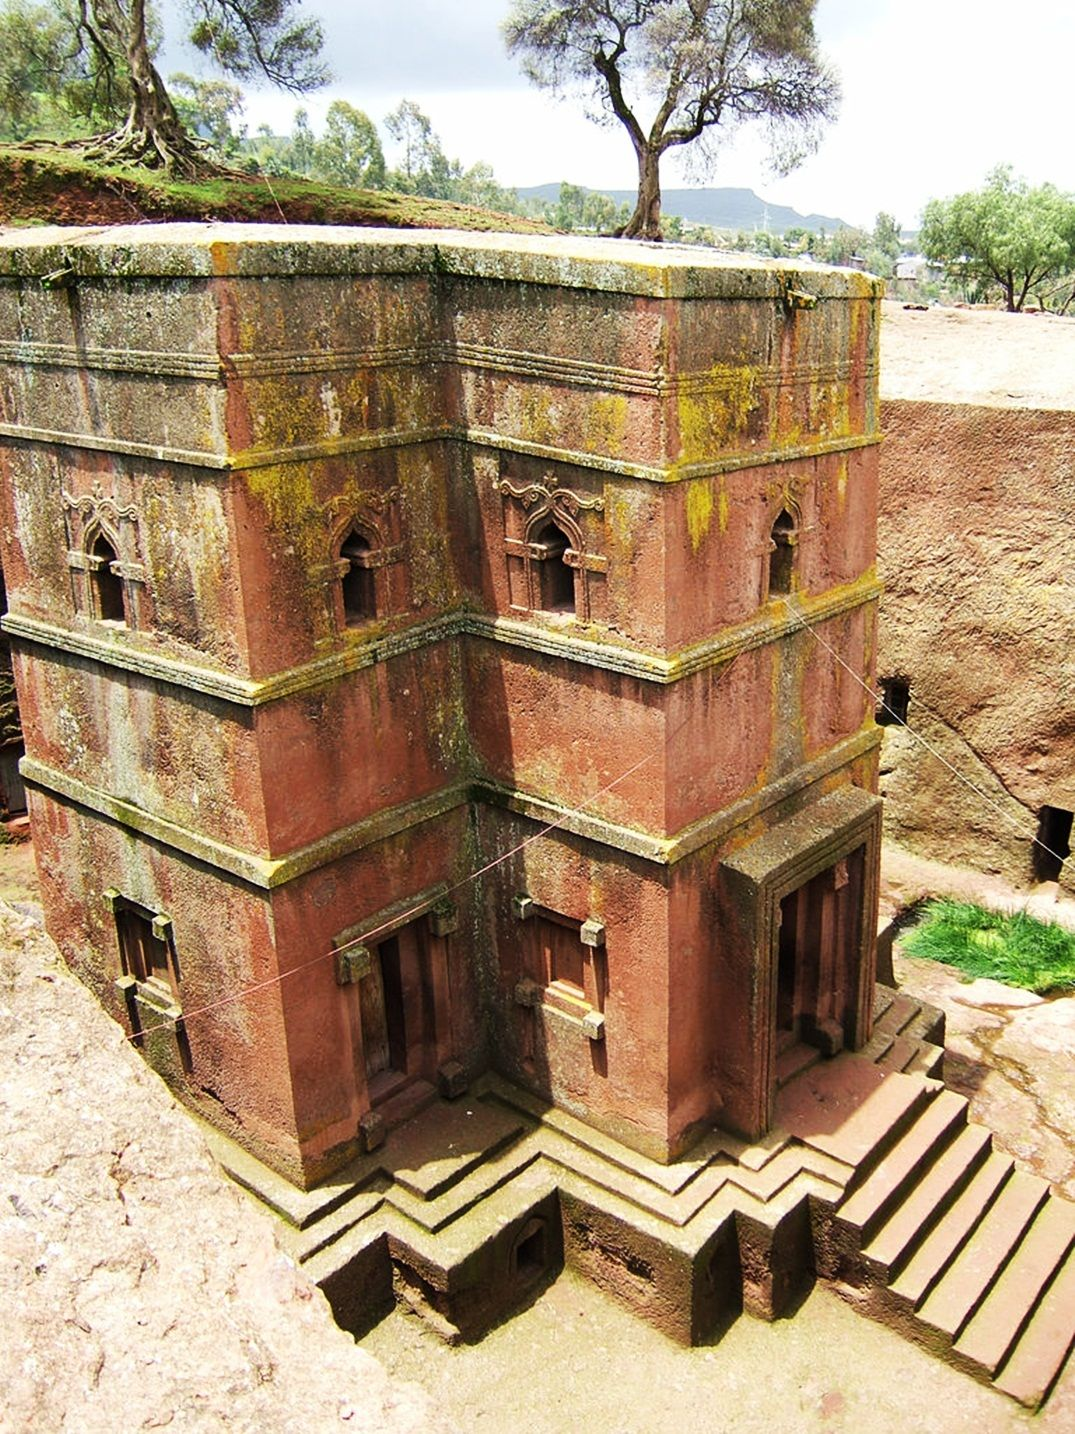 Lalibela, Ethiopia. Church carved out of solid rock in the 12th-13th century